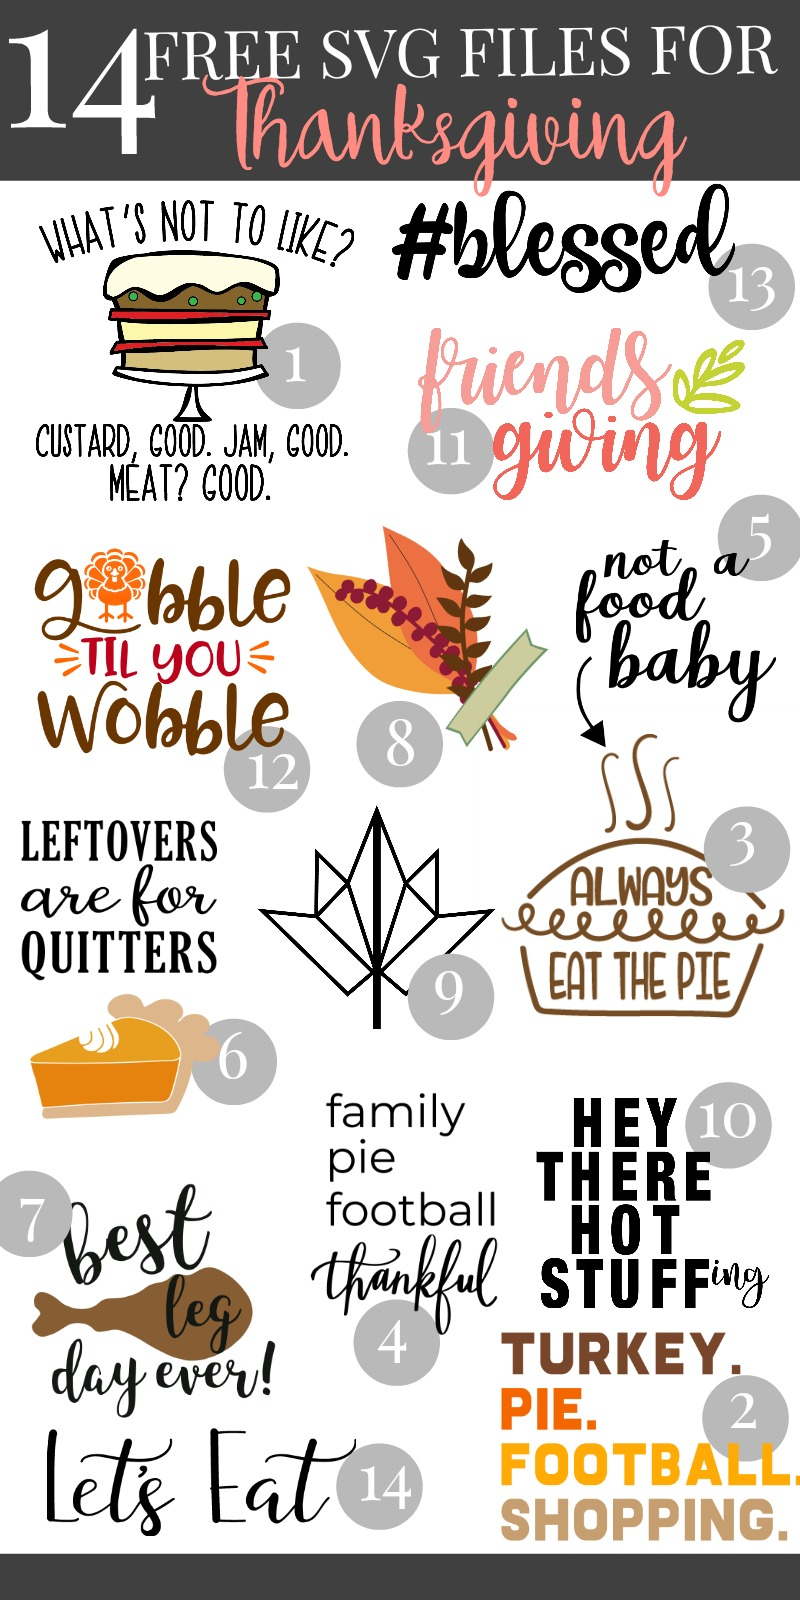 Free Thanksgiving Svg : thanksgiving, File-, #Blessed, Thanksgiving, Hello, Creative, Family